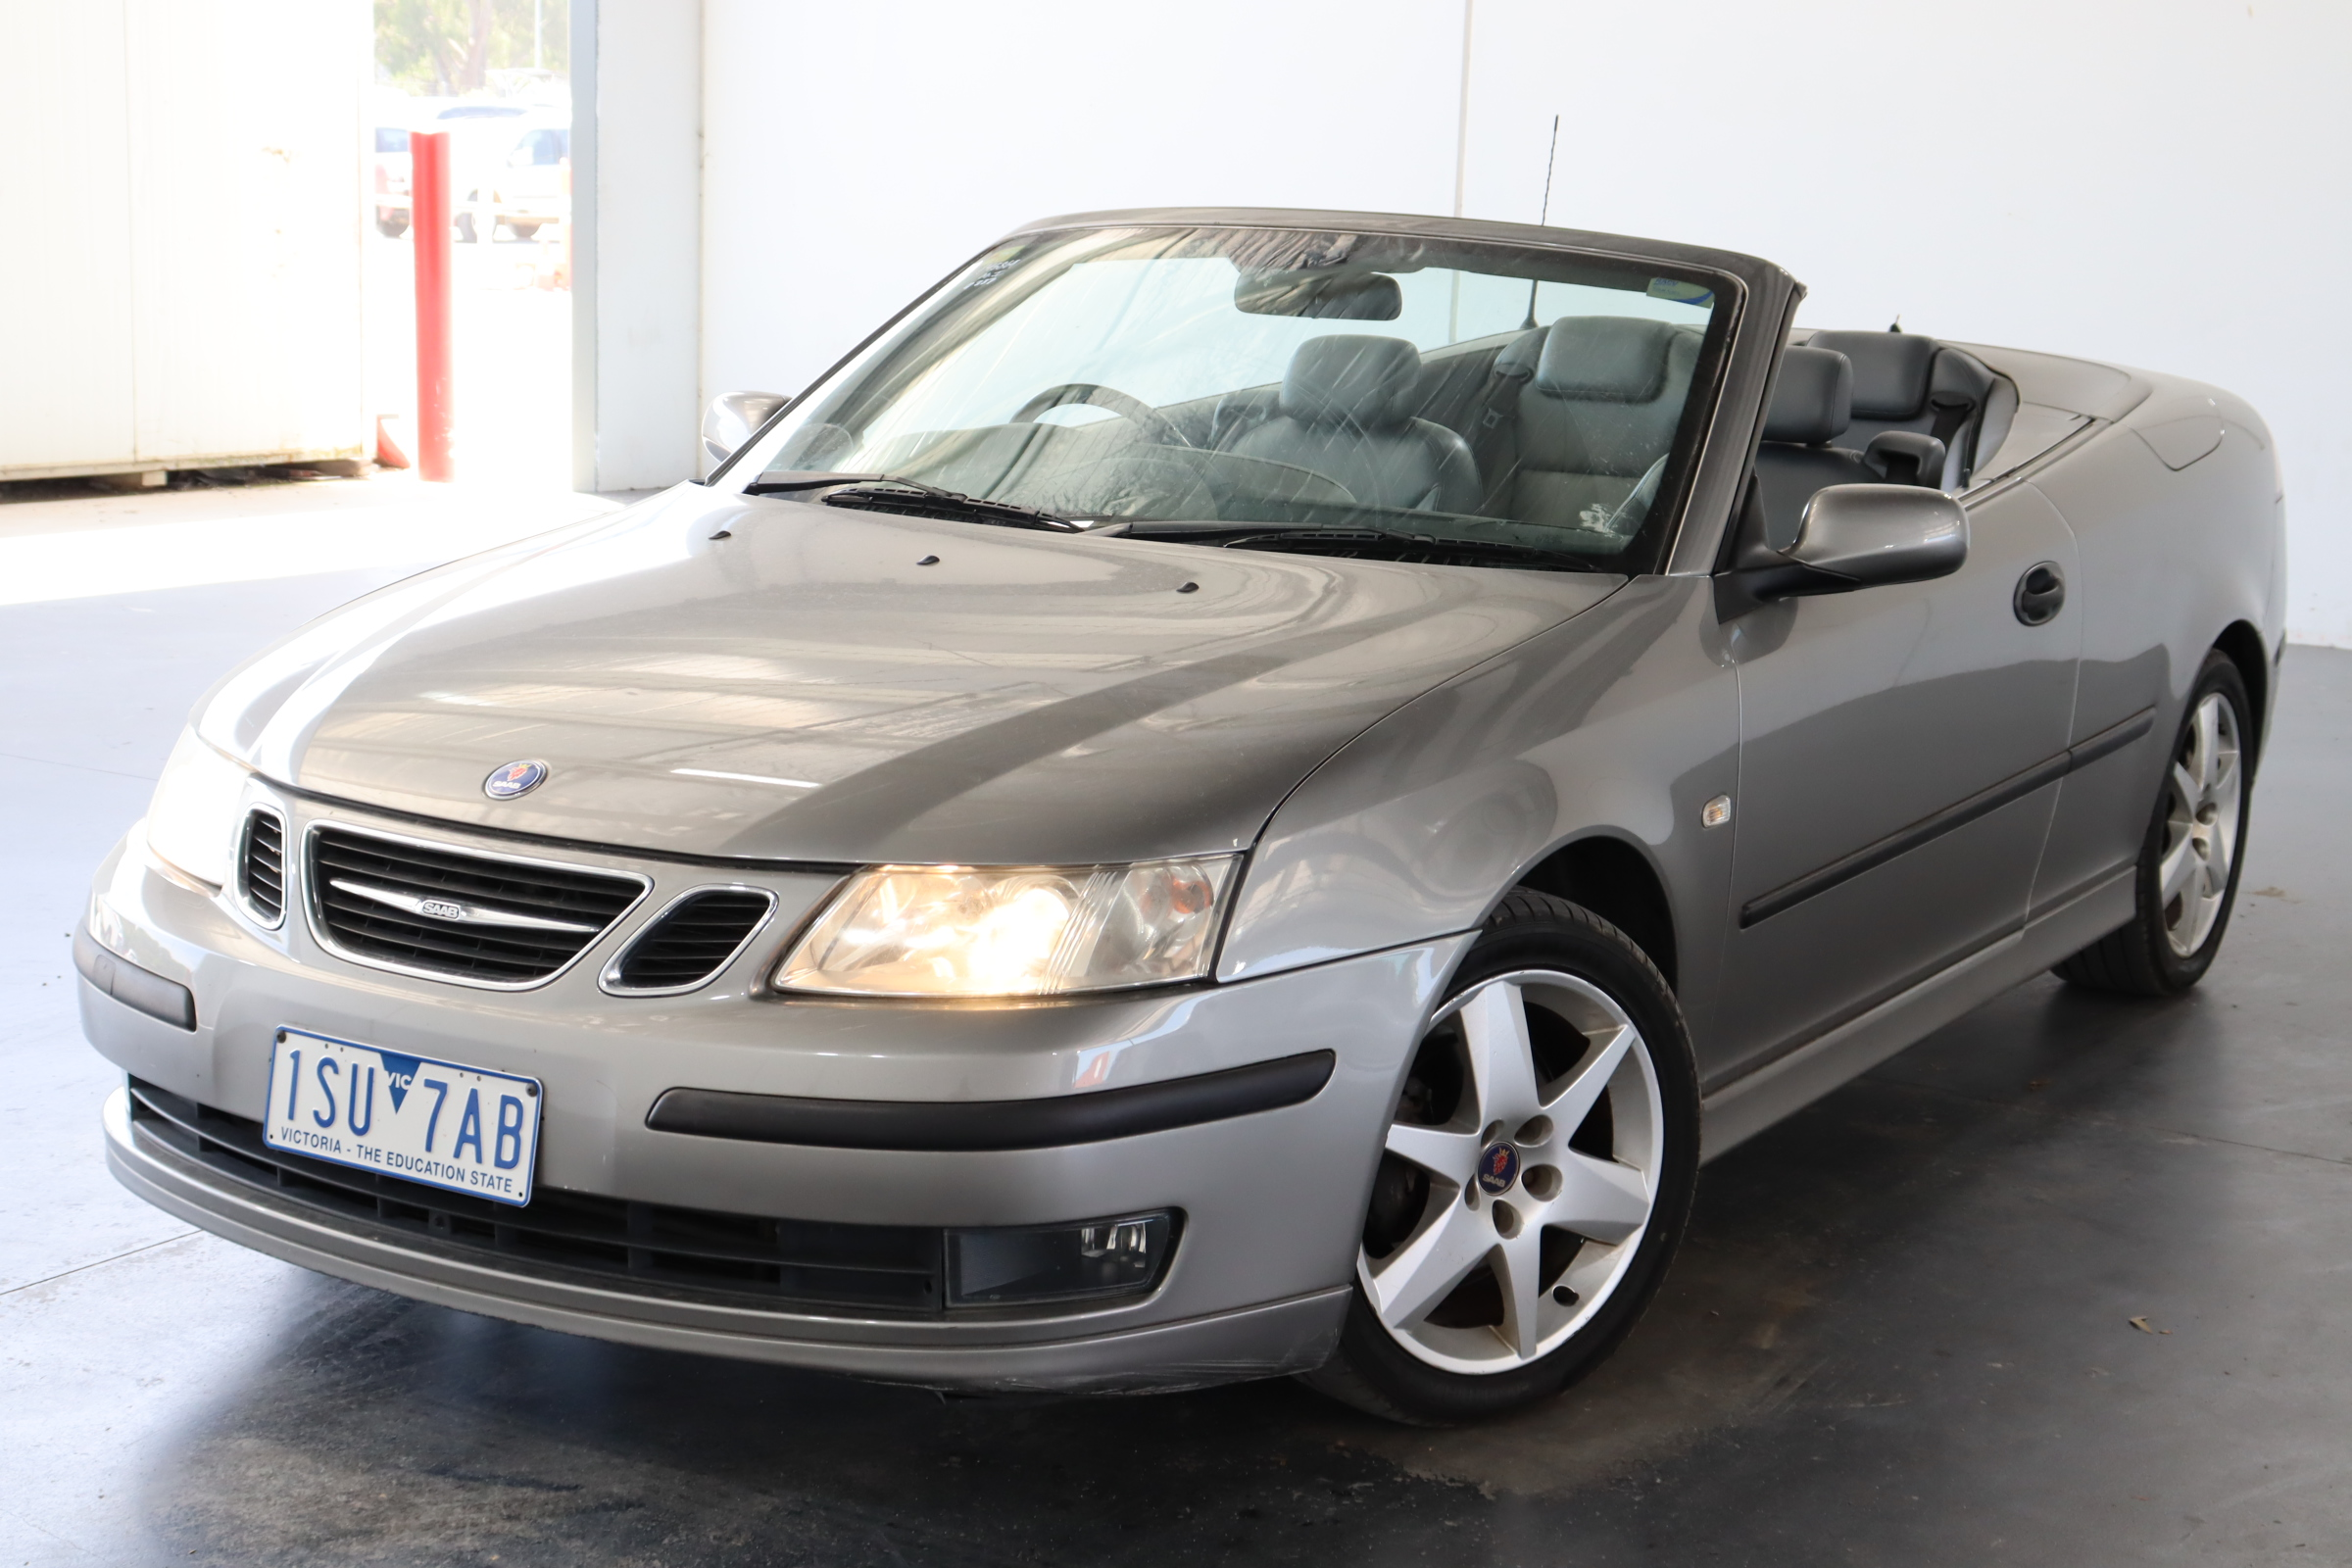 2004 Saab 9-3 Linear Automatic Convertible RWC issued 15/01/2021